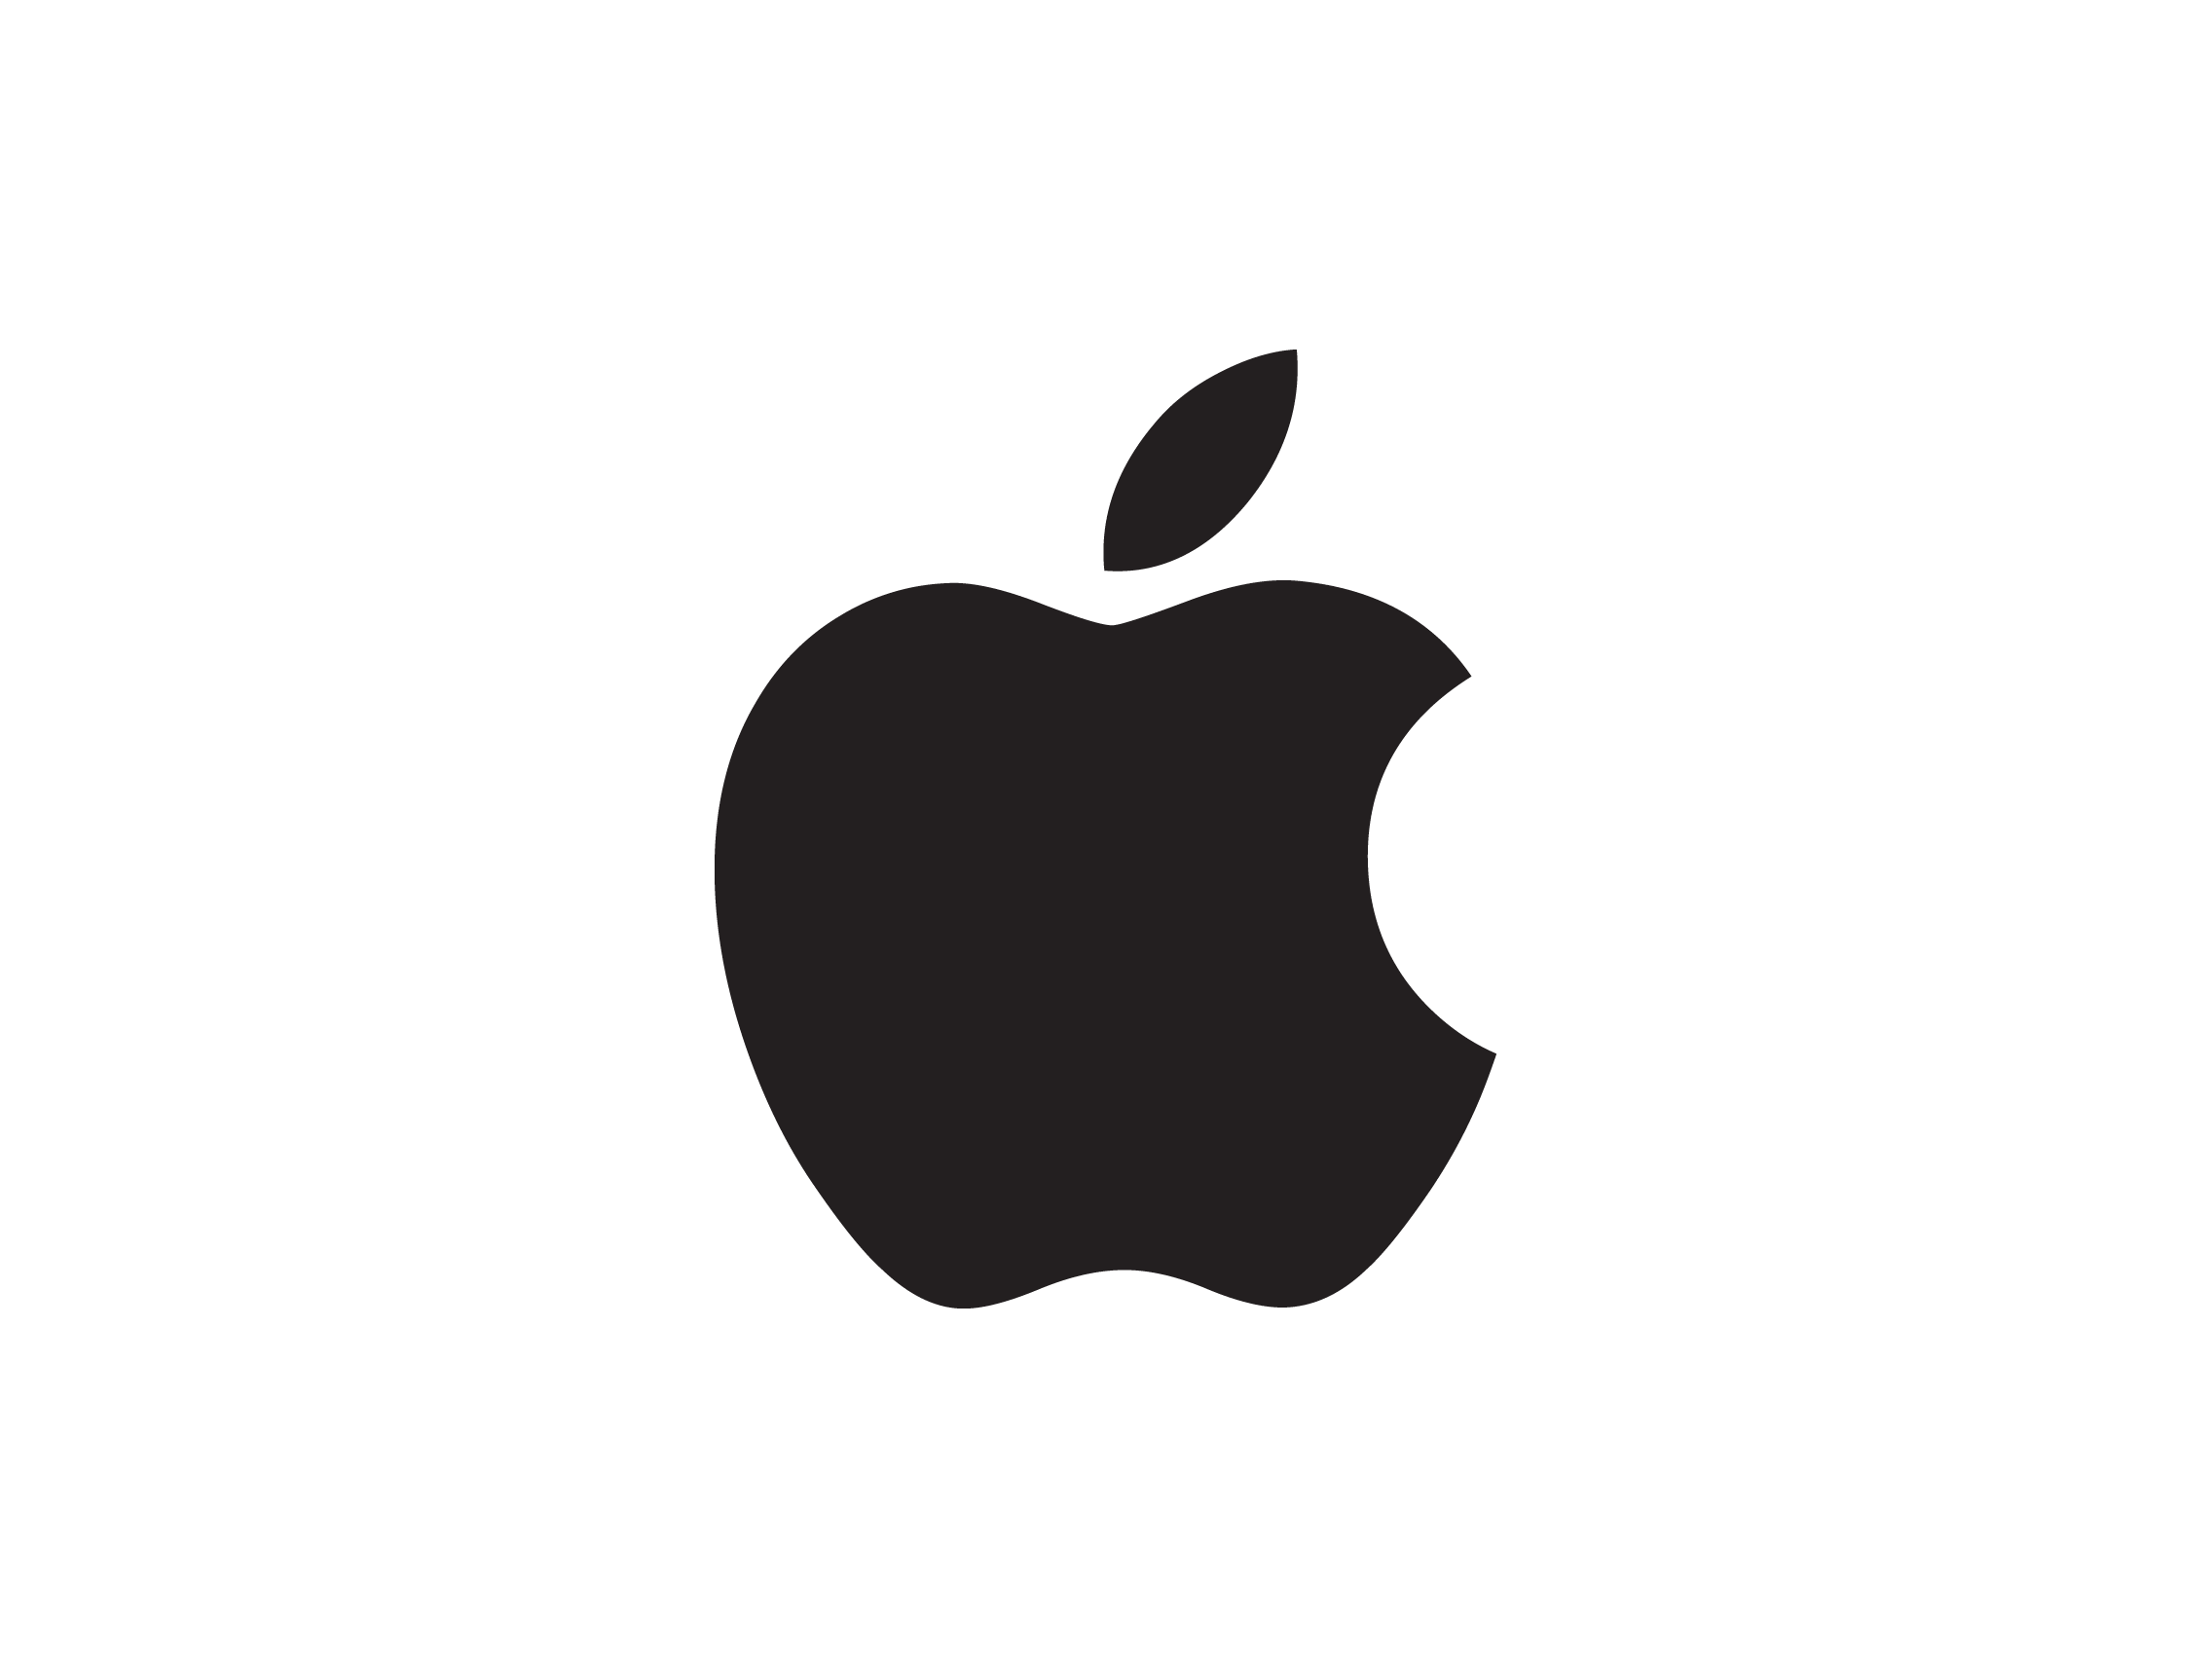 苹果(Apple Inc.)logo